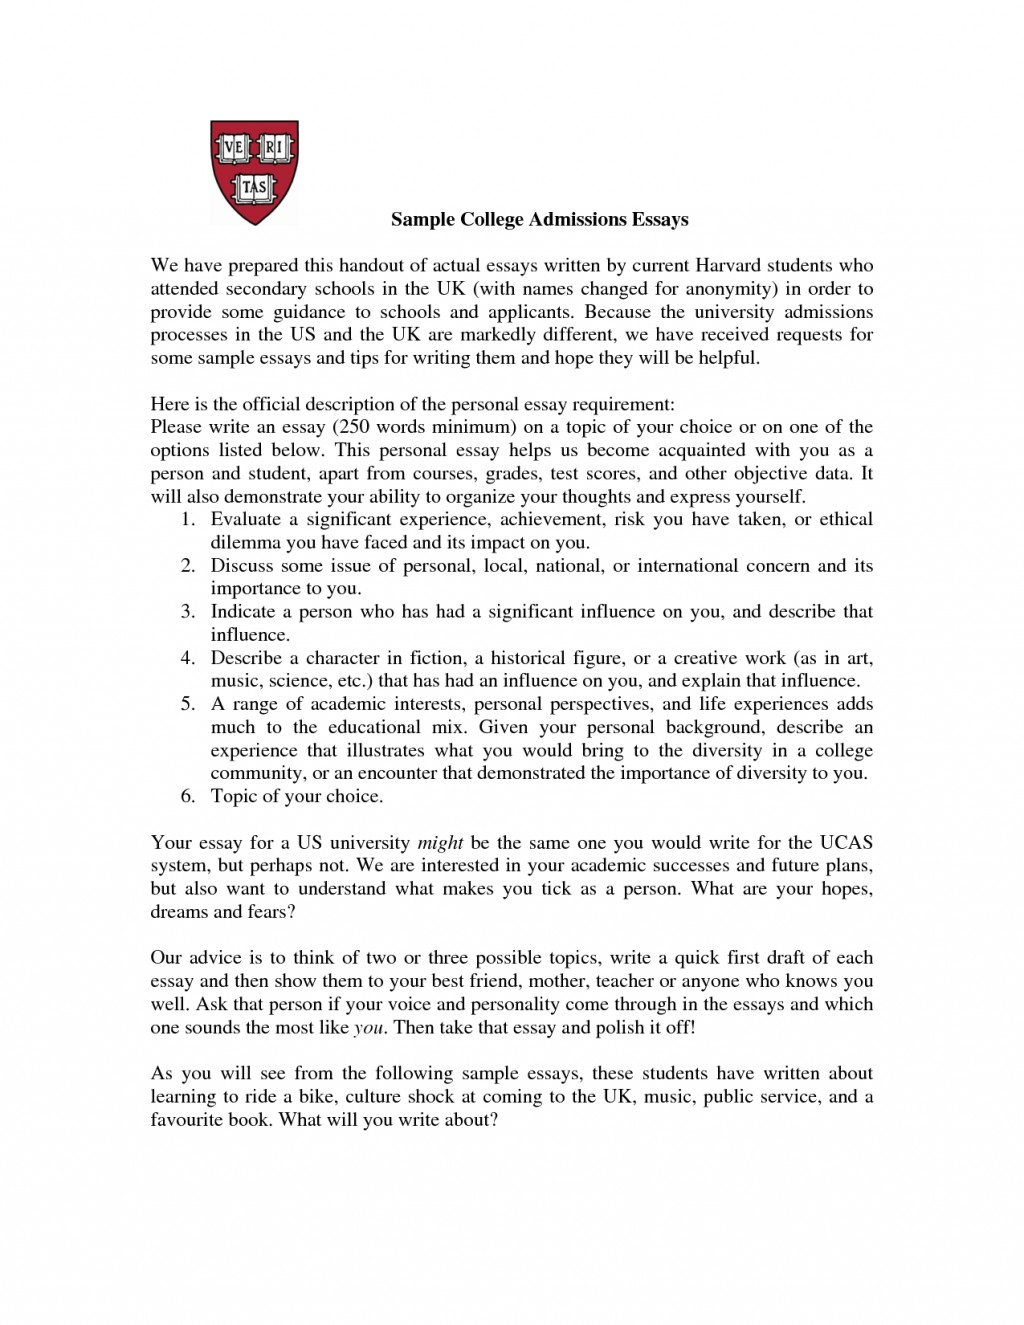 009 Dpy4cpaqnd Essay Example Sample High School Admission Unusual Essays Catholic Free Large